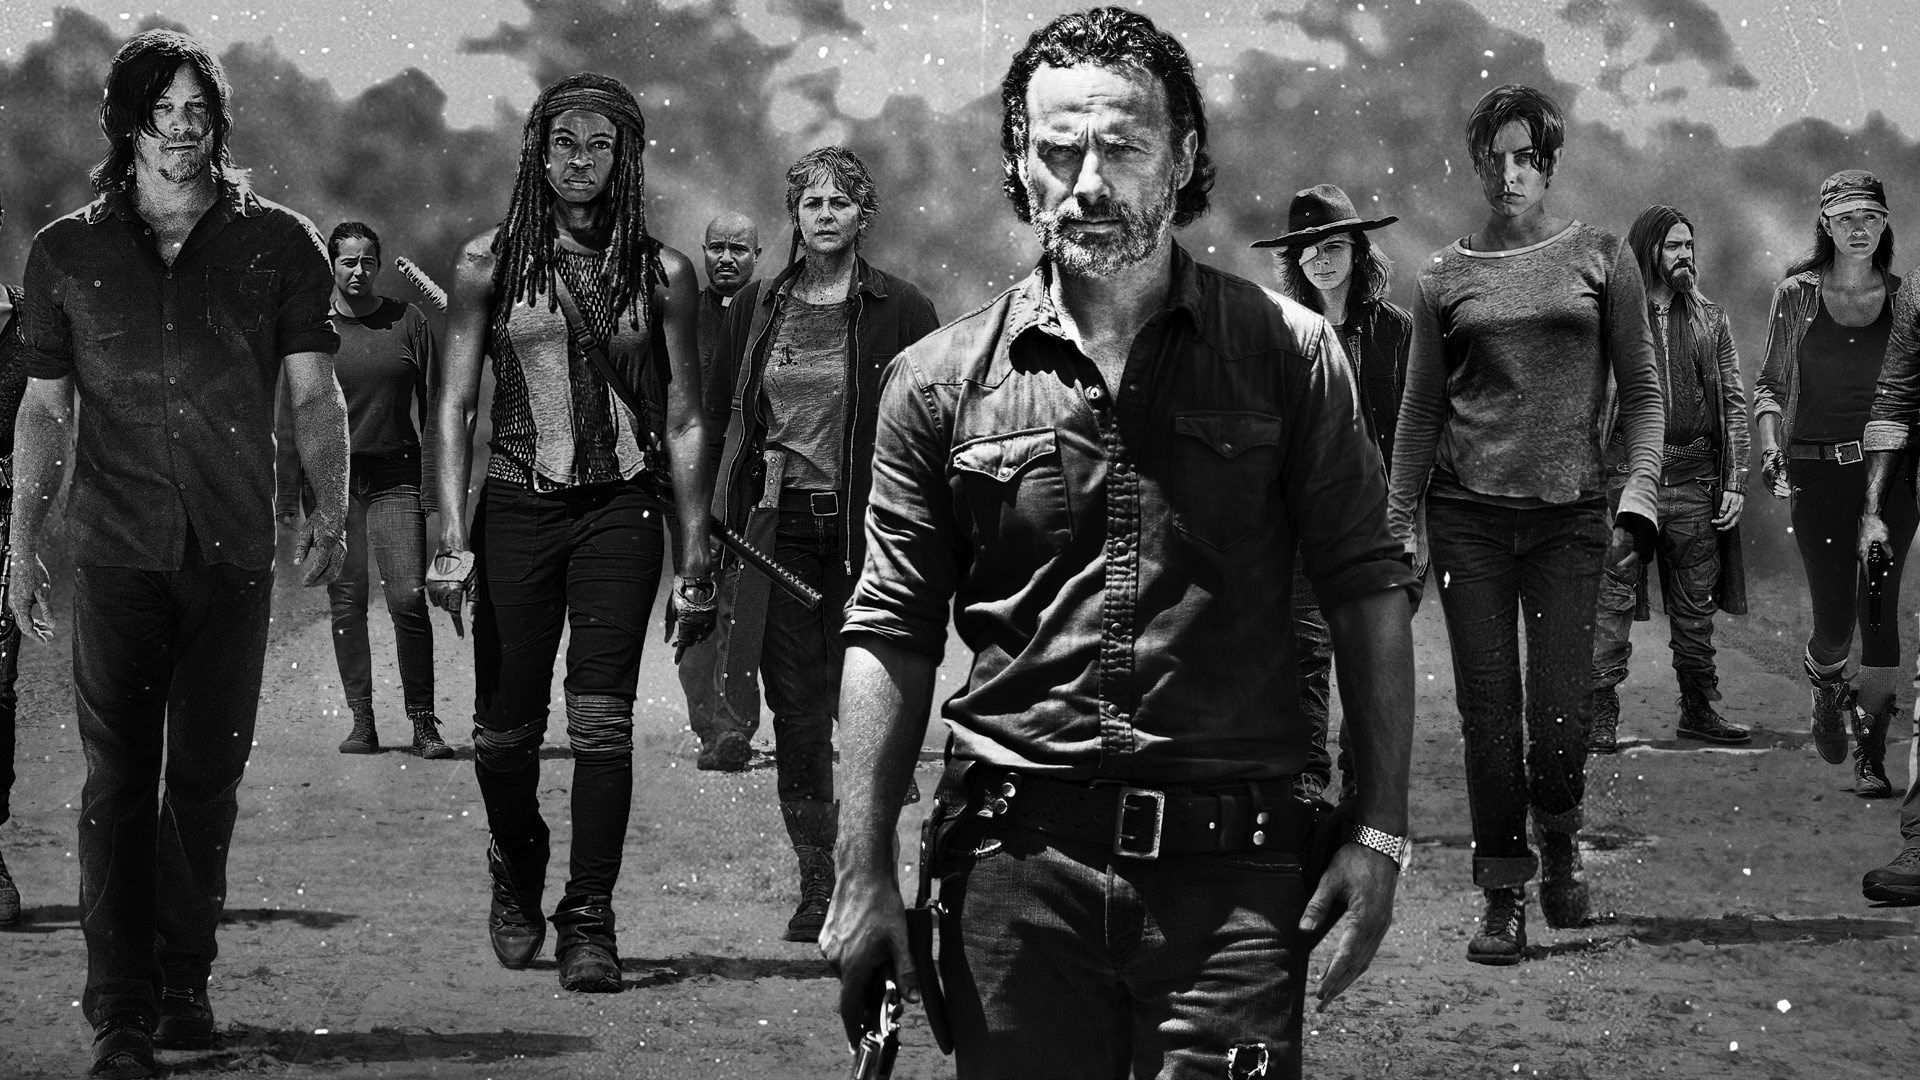 The Walking Dead Wallpaper Collection 1920x1080